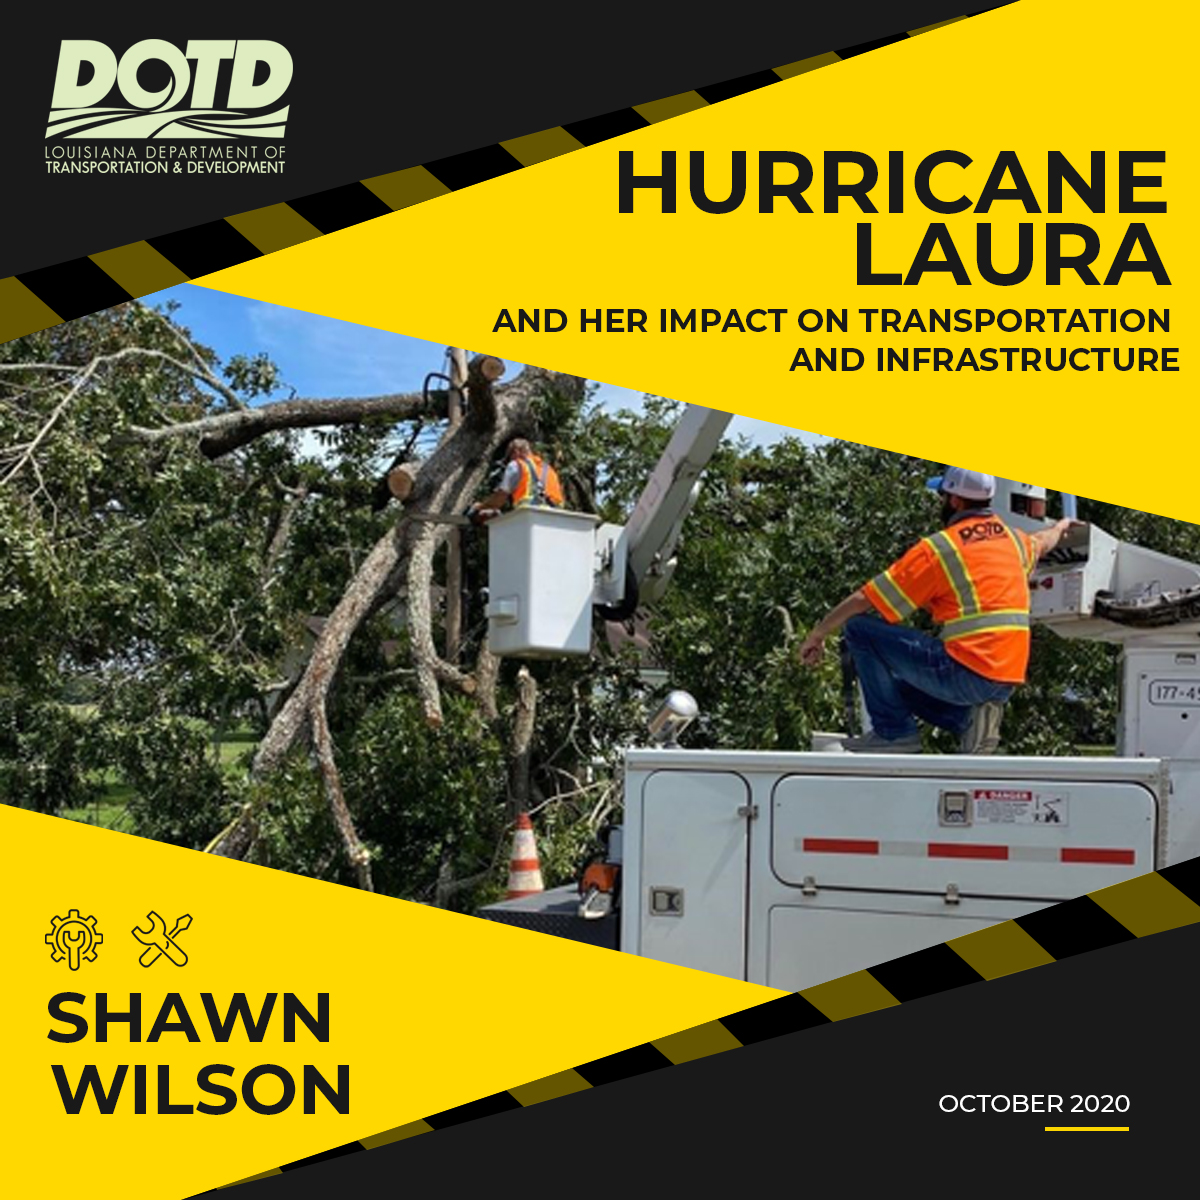 Hurricane Laura and Her Impact on Transportation and Infrastructure